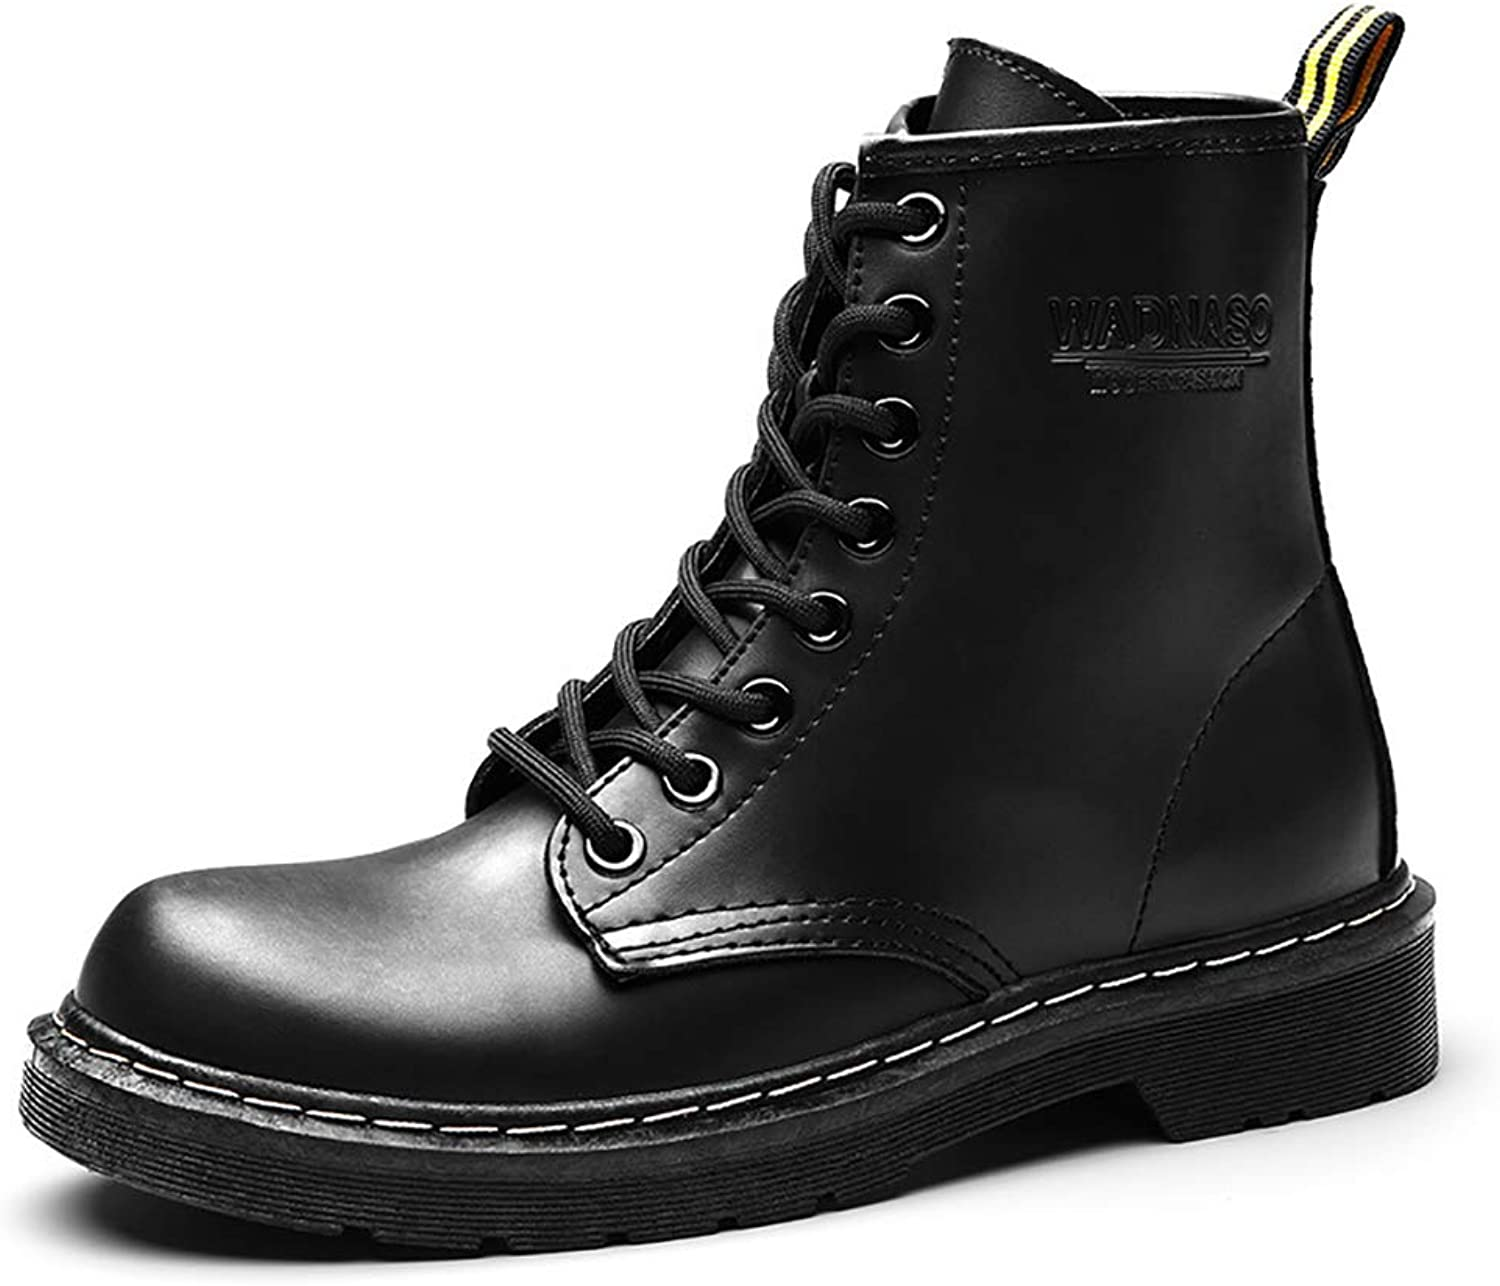 V-DOTE Women Lace Up Low Heel Mid Calf Winter Combat Boots